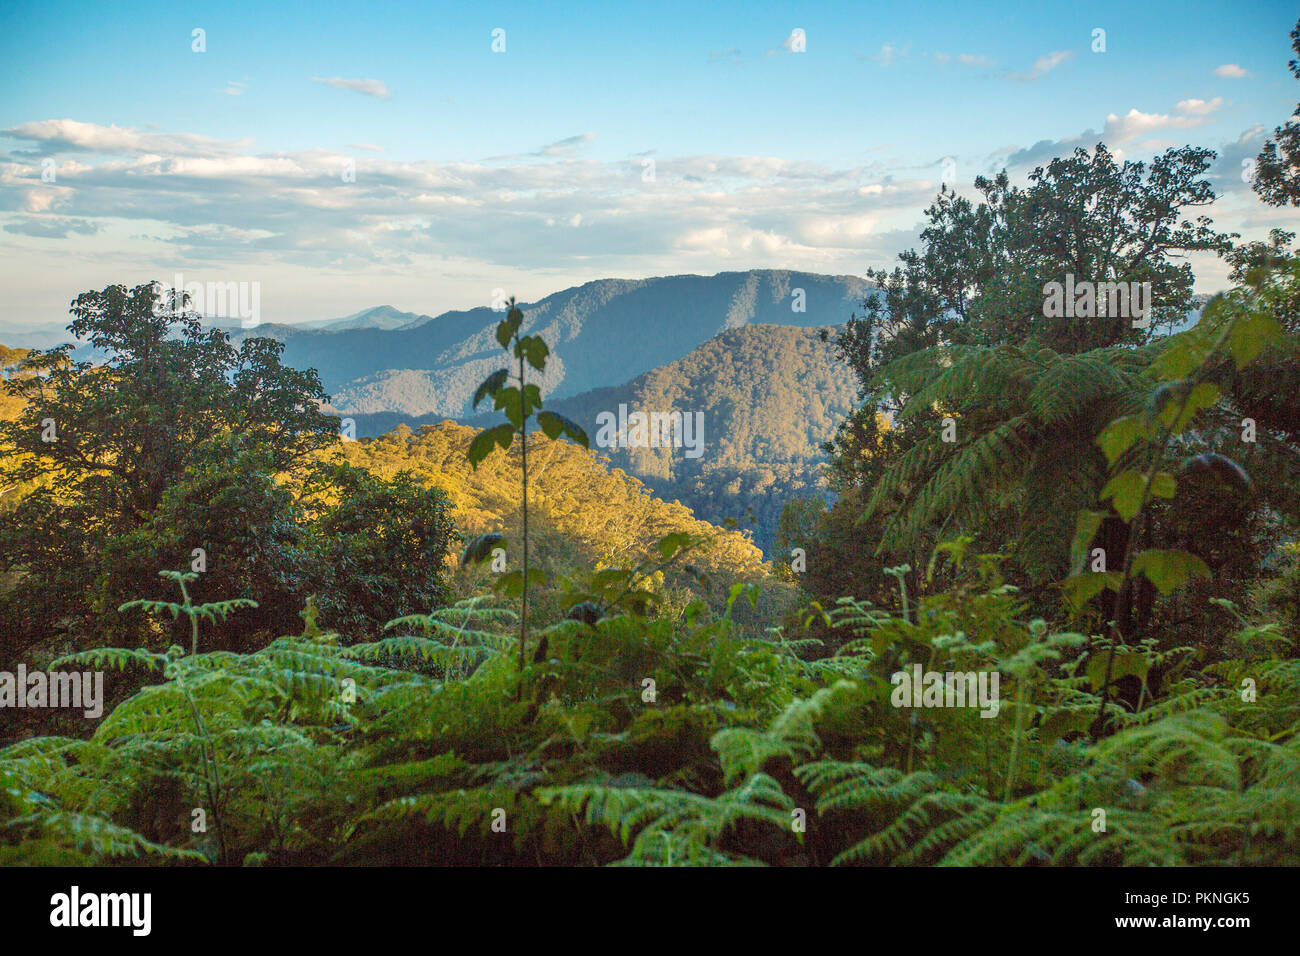 View of steep and forested peaks of Great Dividing Range rising into blue sky near Dorrigo in northern NSW Australia - Stock Image